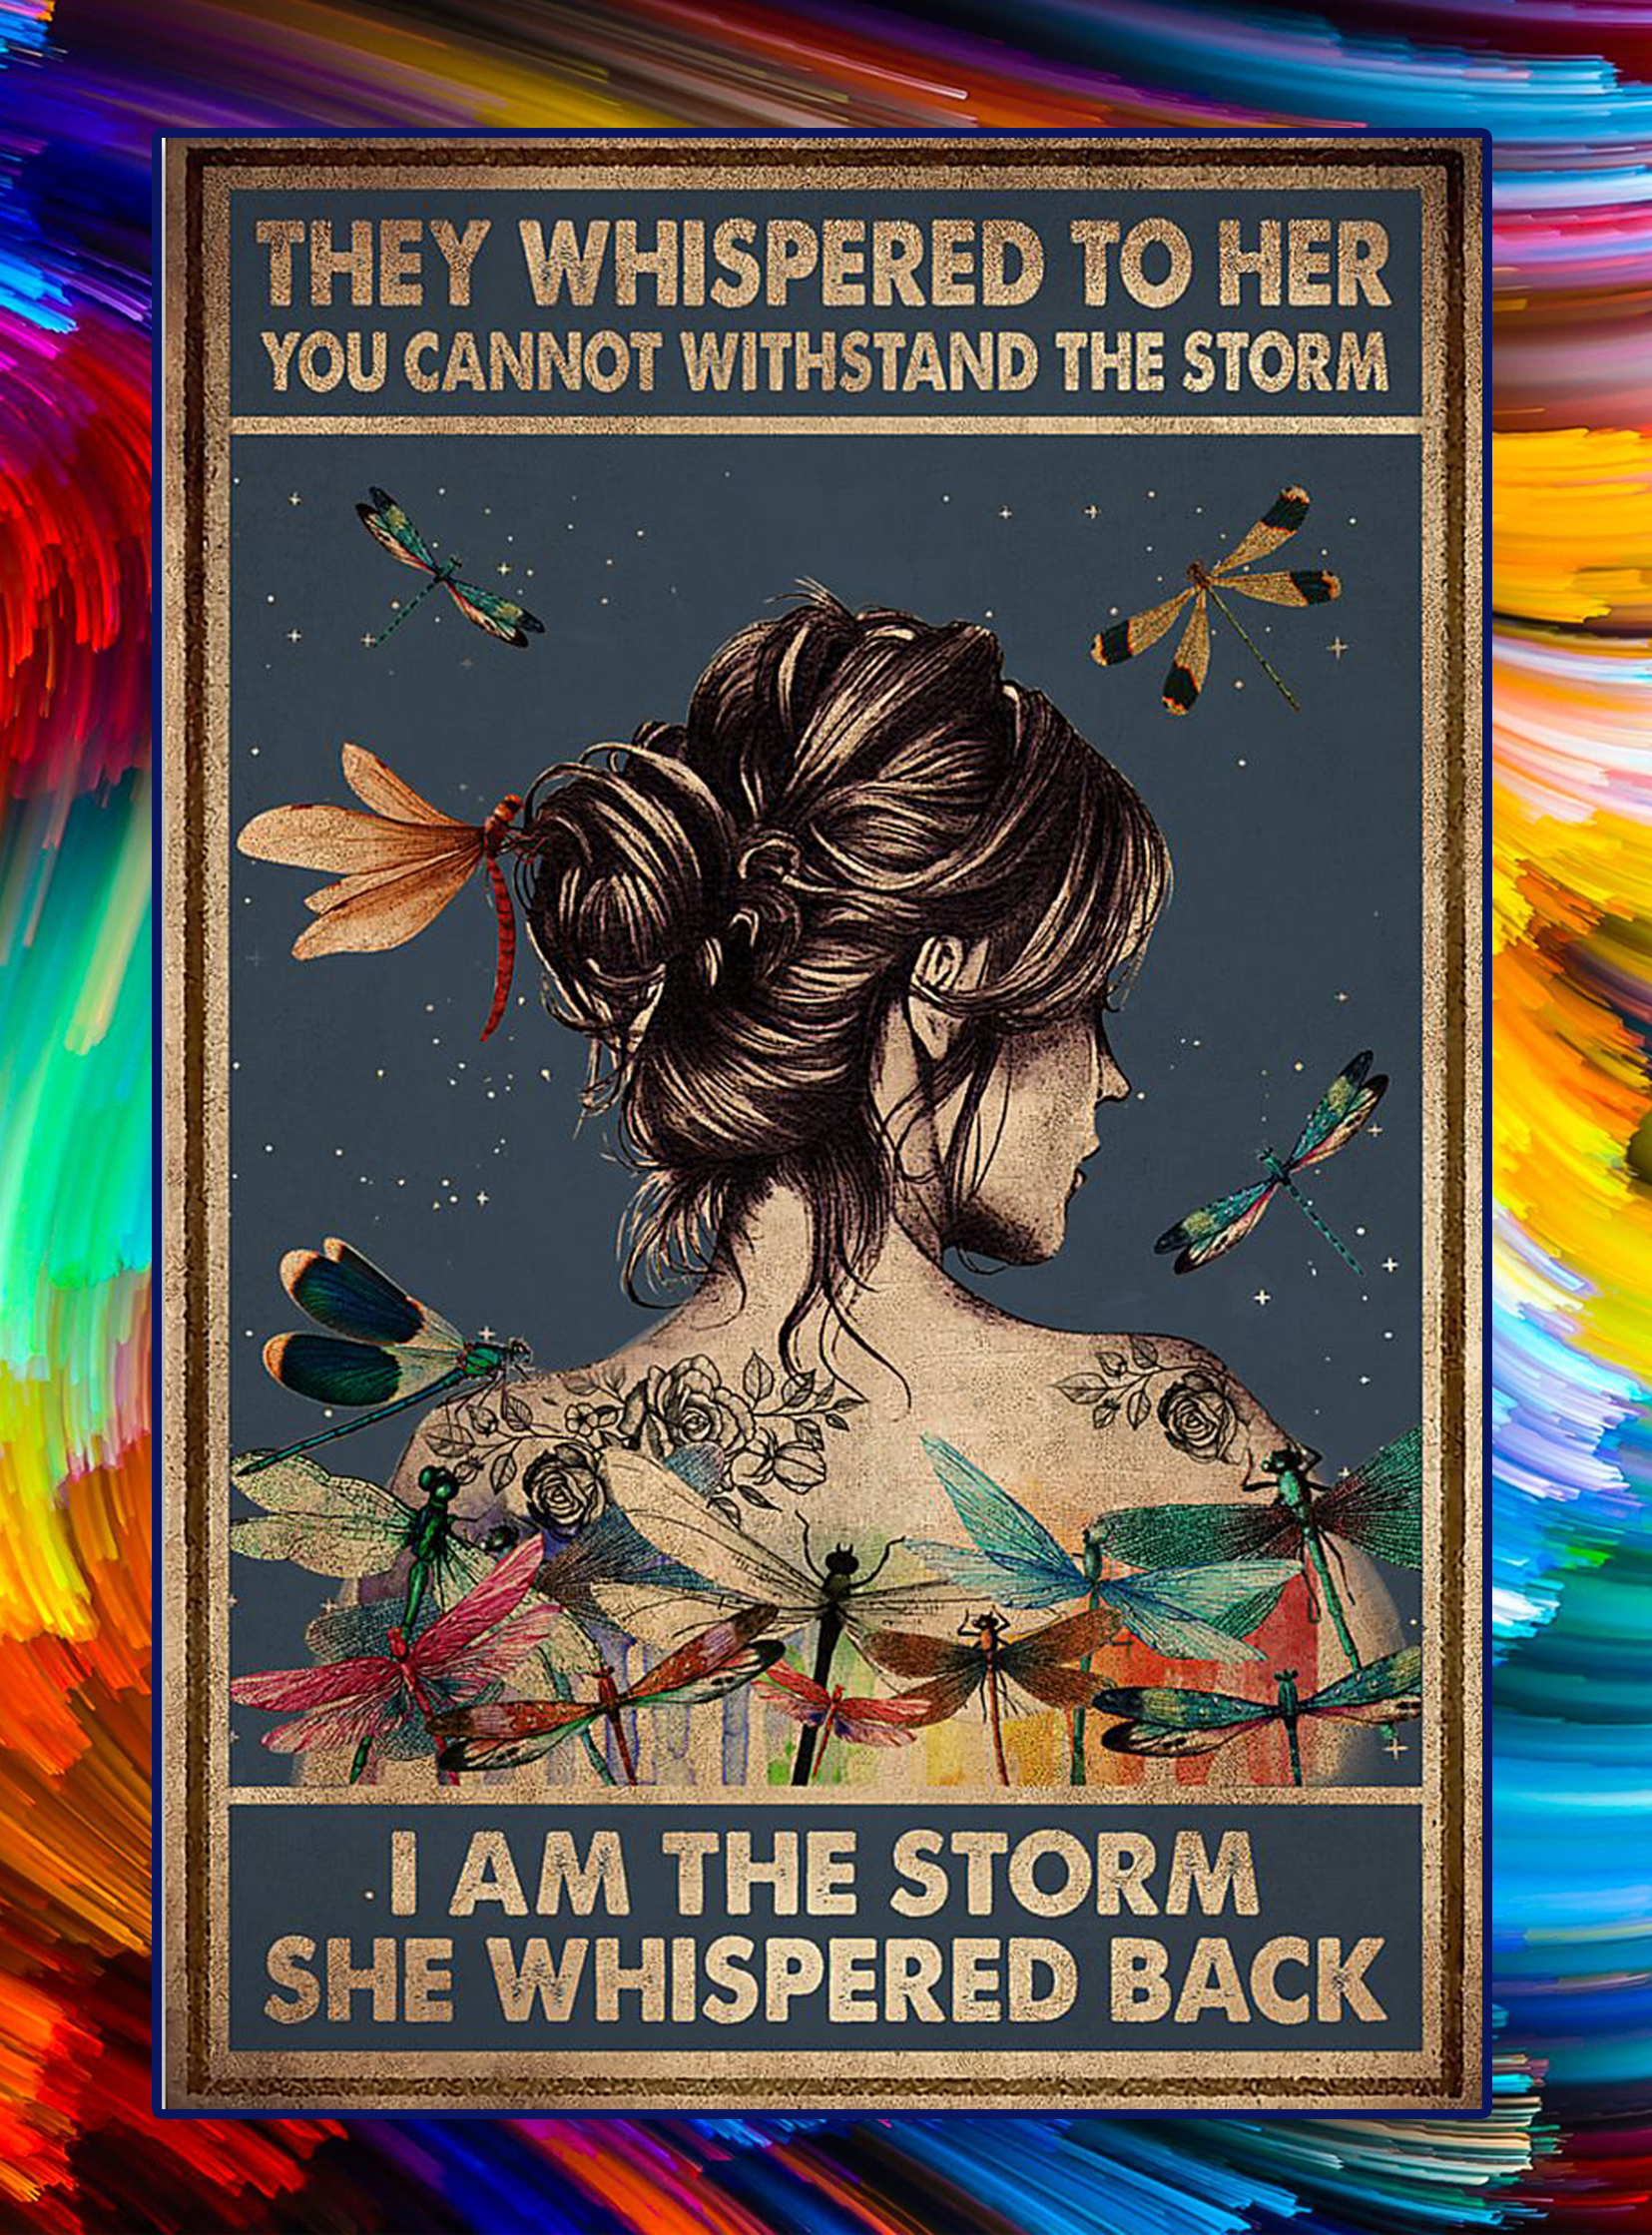 Hippie dragonfly they whispered to her i am the storm poster - A4